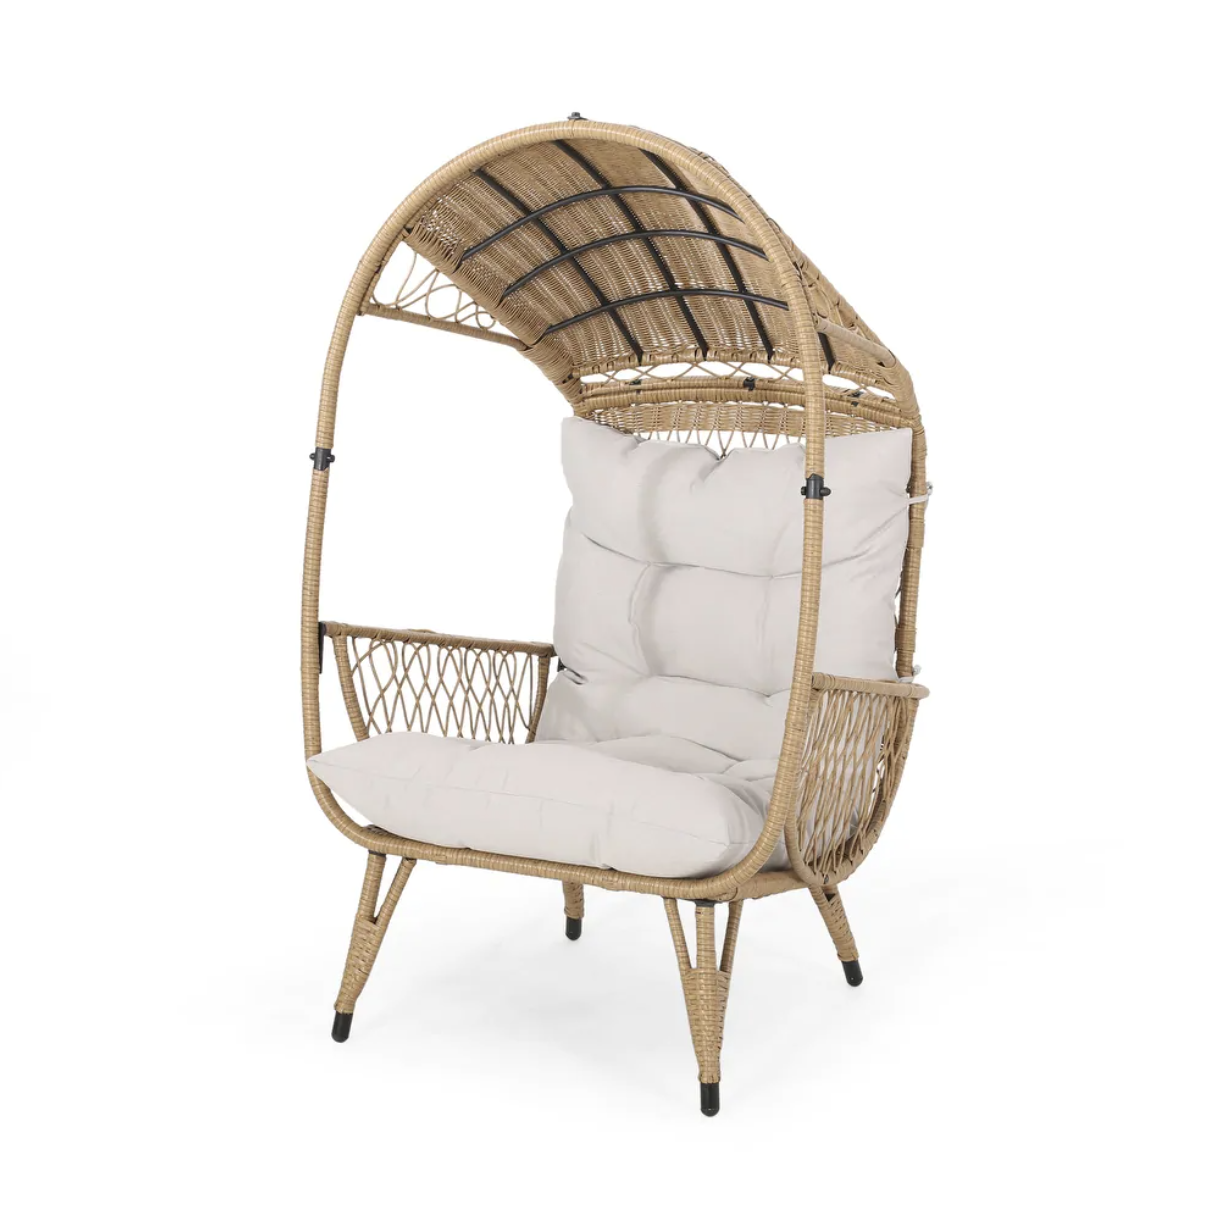 Malia Outdoor Cushioned Wicker Basket Chair by Christopher Knight Home - Light Brown + Beige Cushion, Target Southport Patio Egg Chair, Target Southport Patio Egg Chair dupes, affordable dupes for the Target Southport Patio Egg Chair, egg chair inspiration, egg chair home ideas, egg chairs, wicker egg chairs, hanging egg chairs, target dupes, target furniture dupes, target patio furniture, Red Soles and Red Wine